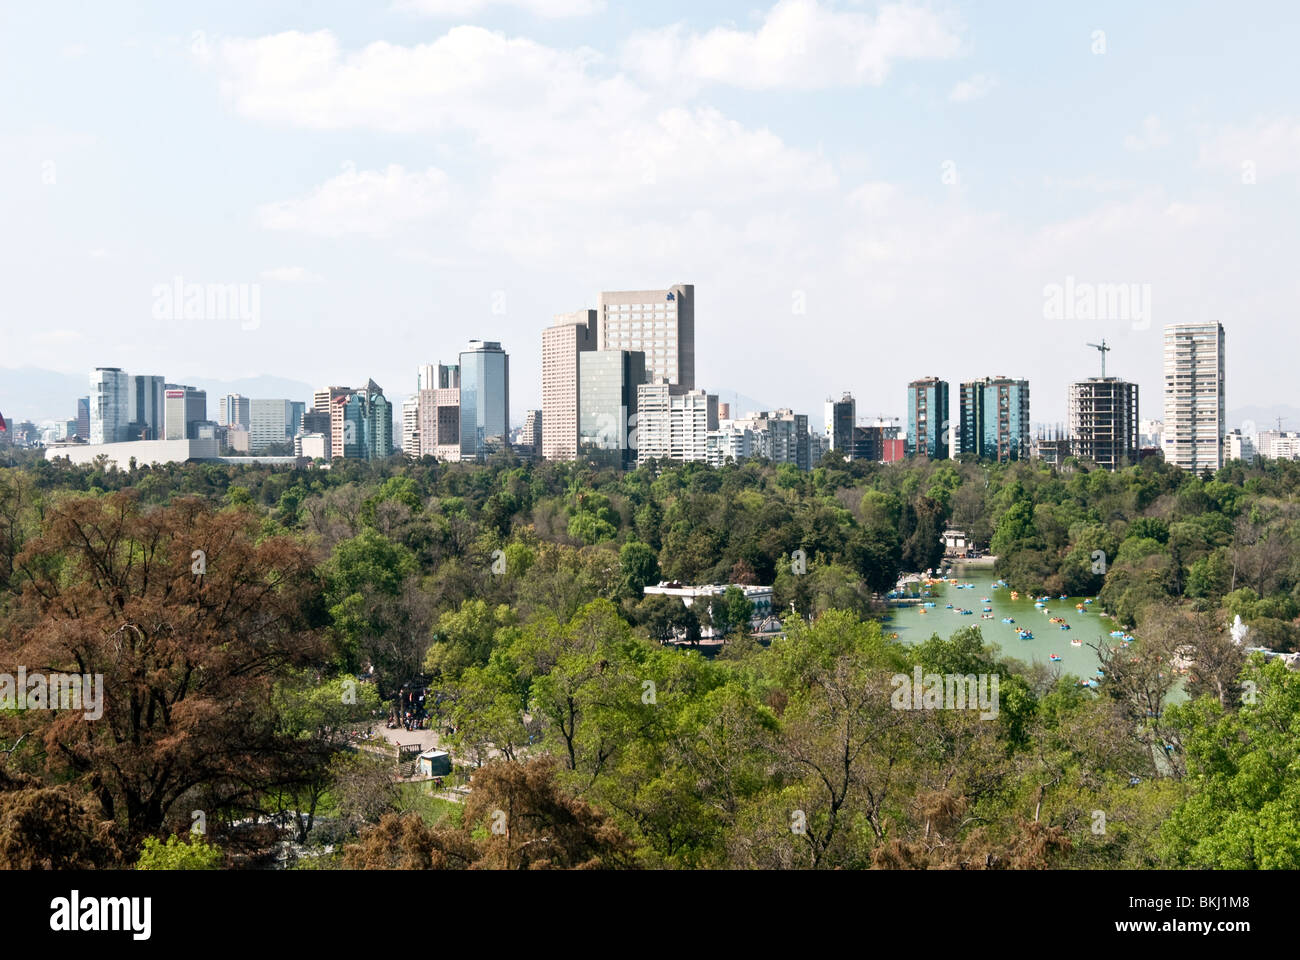 Mexico City skyline seen from Chapultepec Castle looking across Chapultepec Park & people boating on Lago Chapultepec - Stock Image